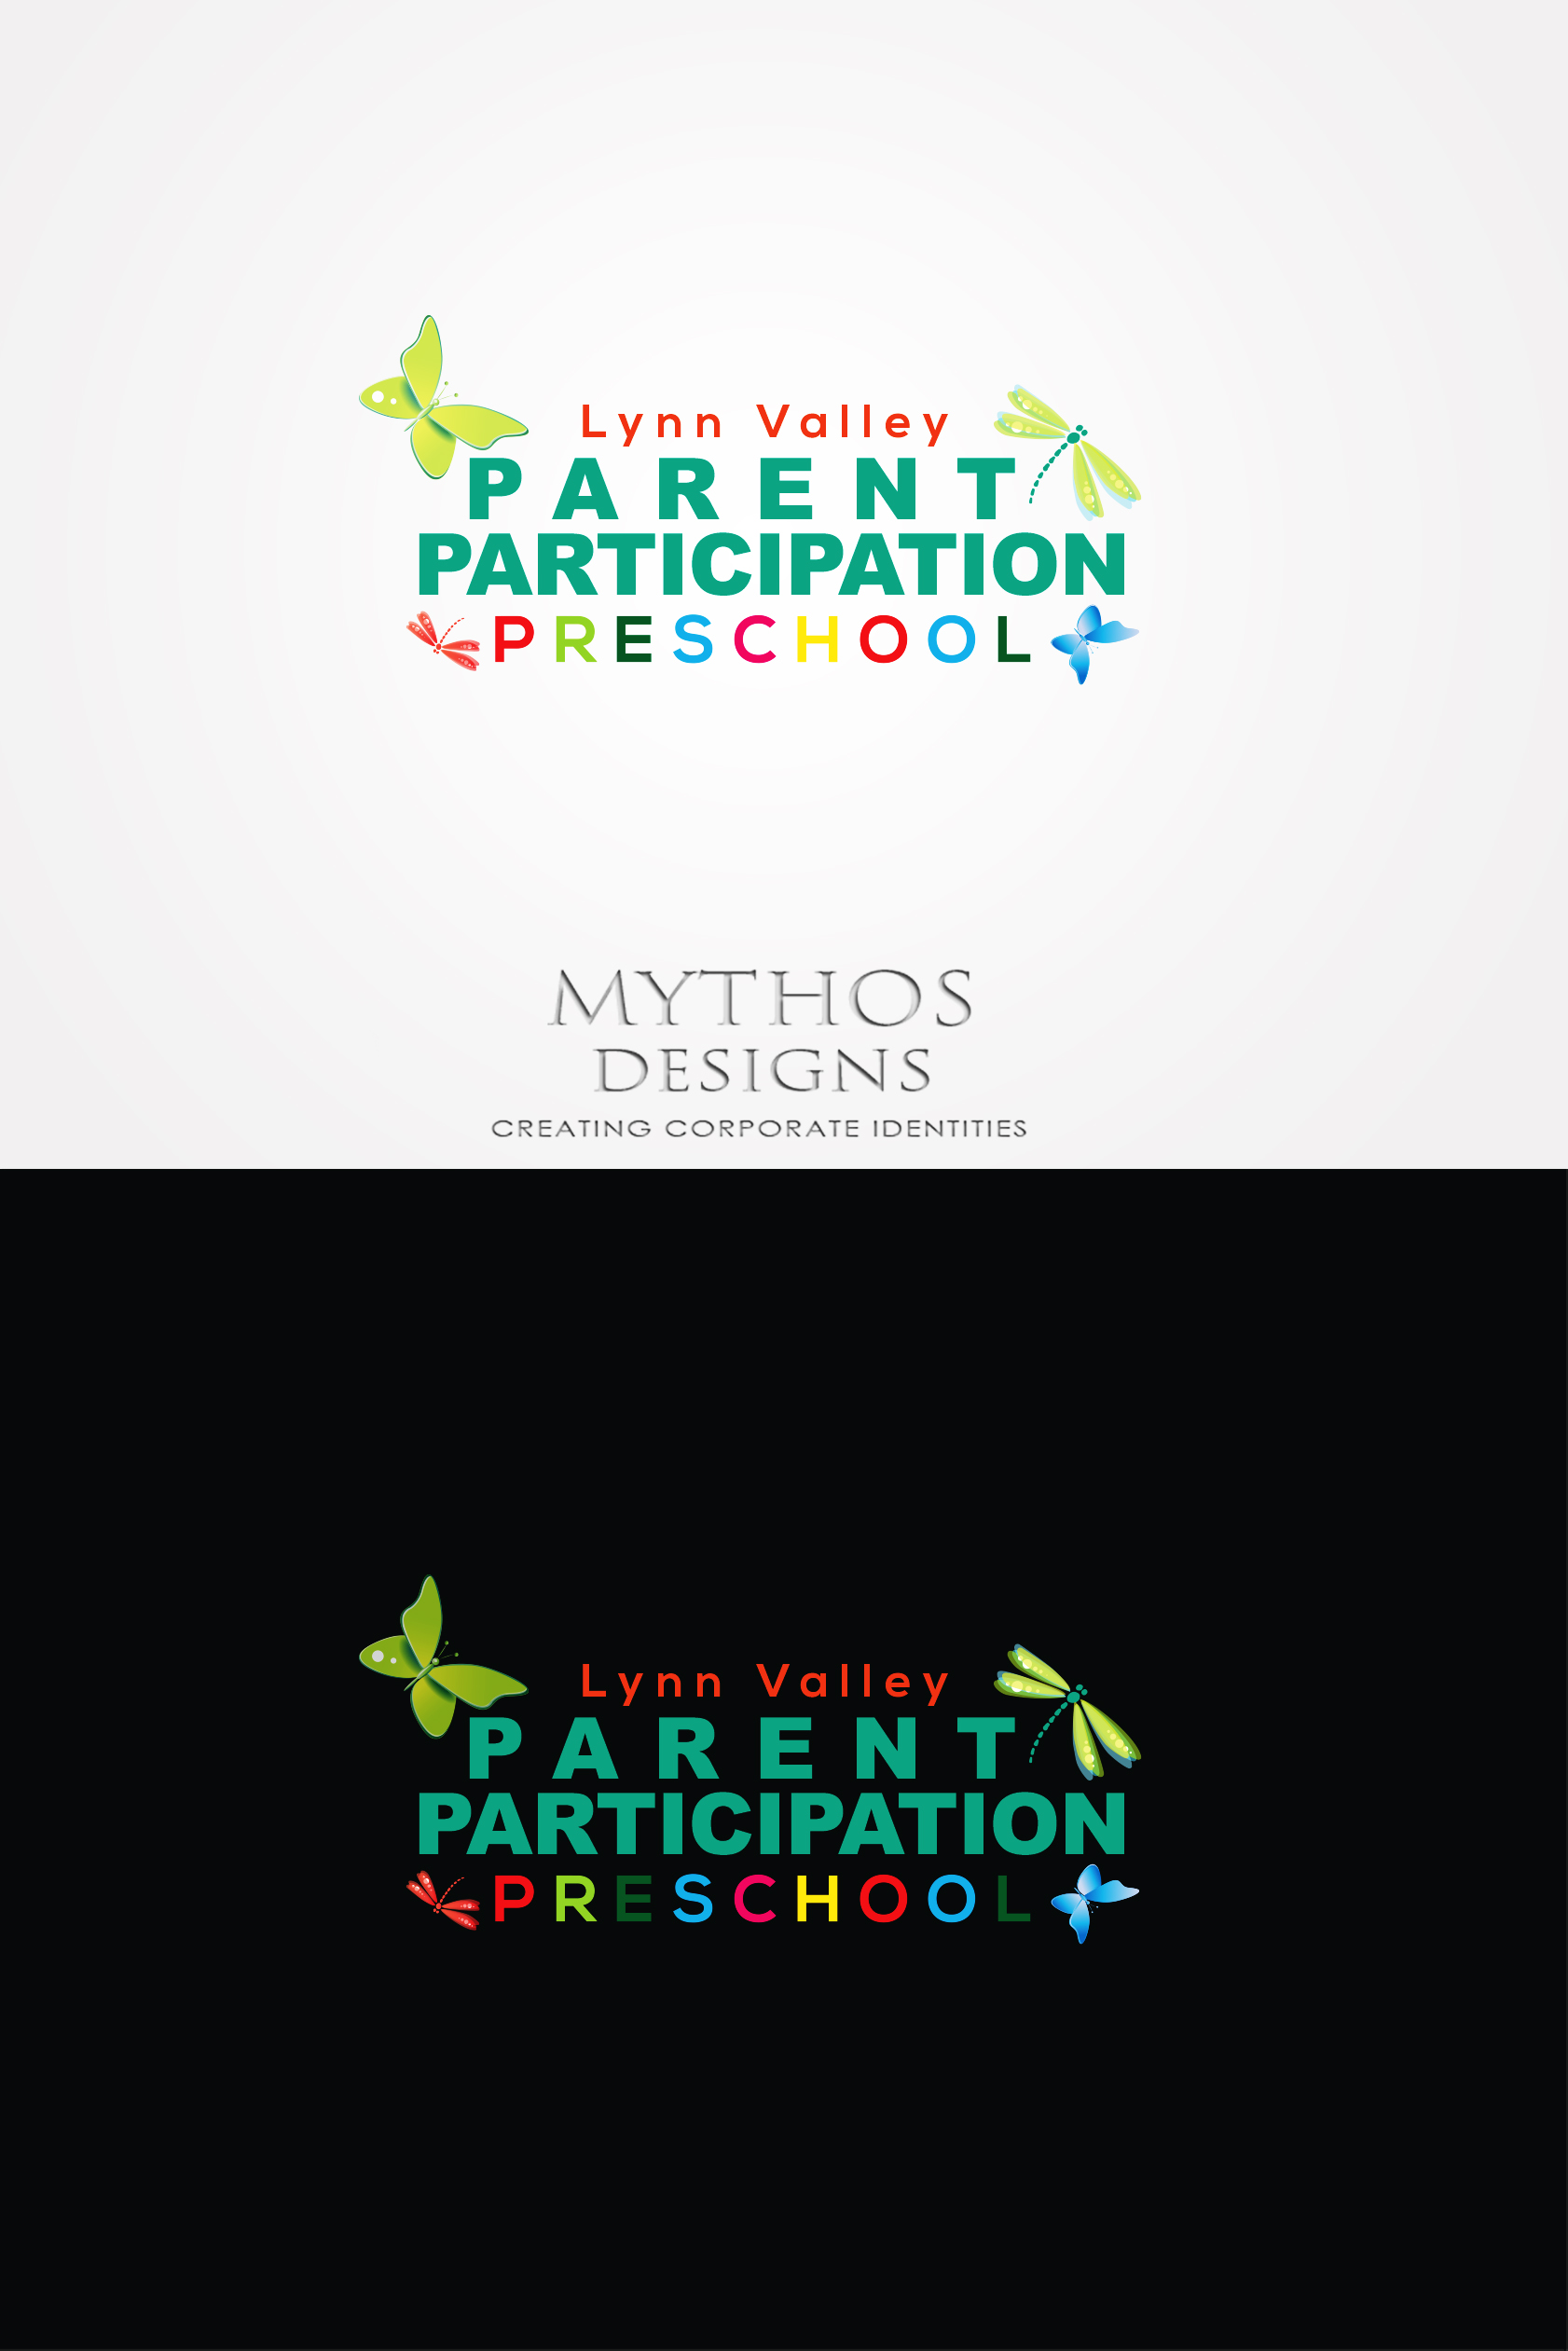 Logo Design by Mythos Designs - Entry No. 52 in the Logo Design Contest New Logo Design for Lynn Valley Parent Participation Preschool.